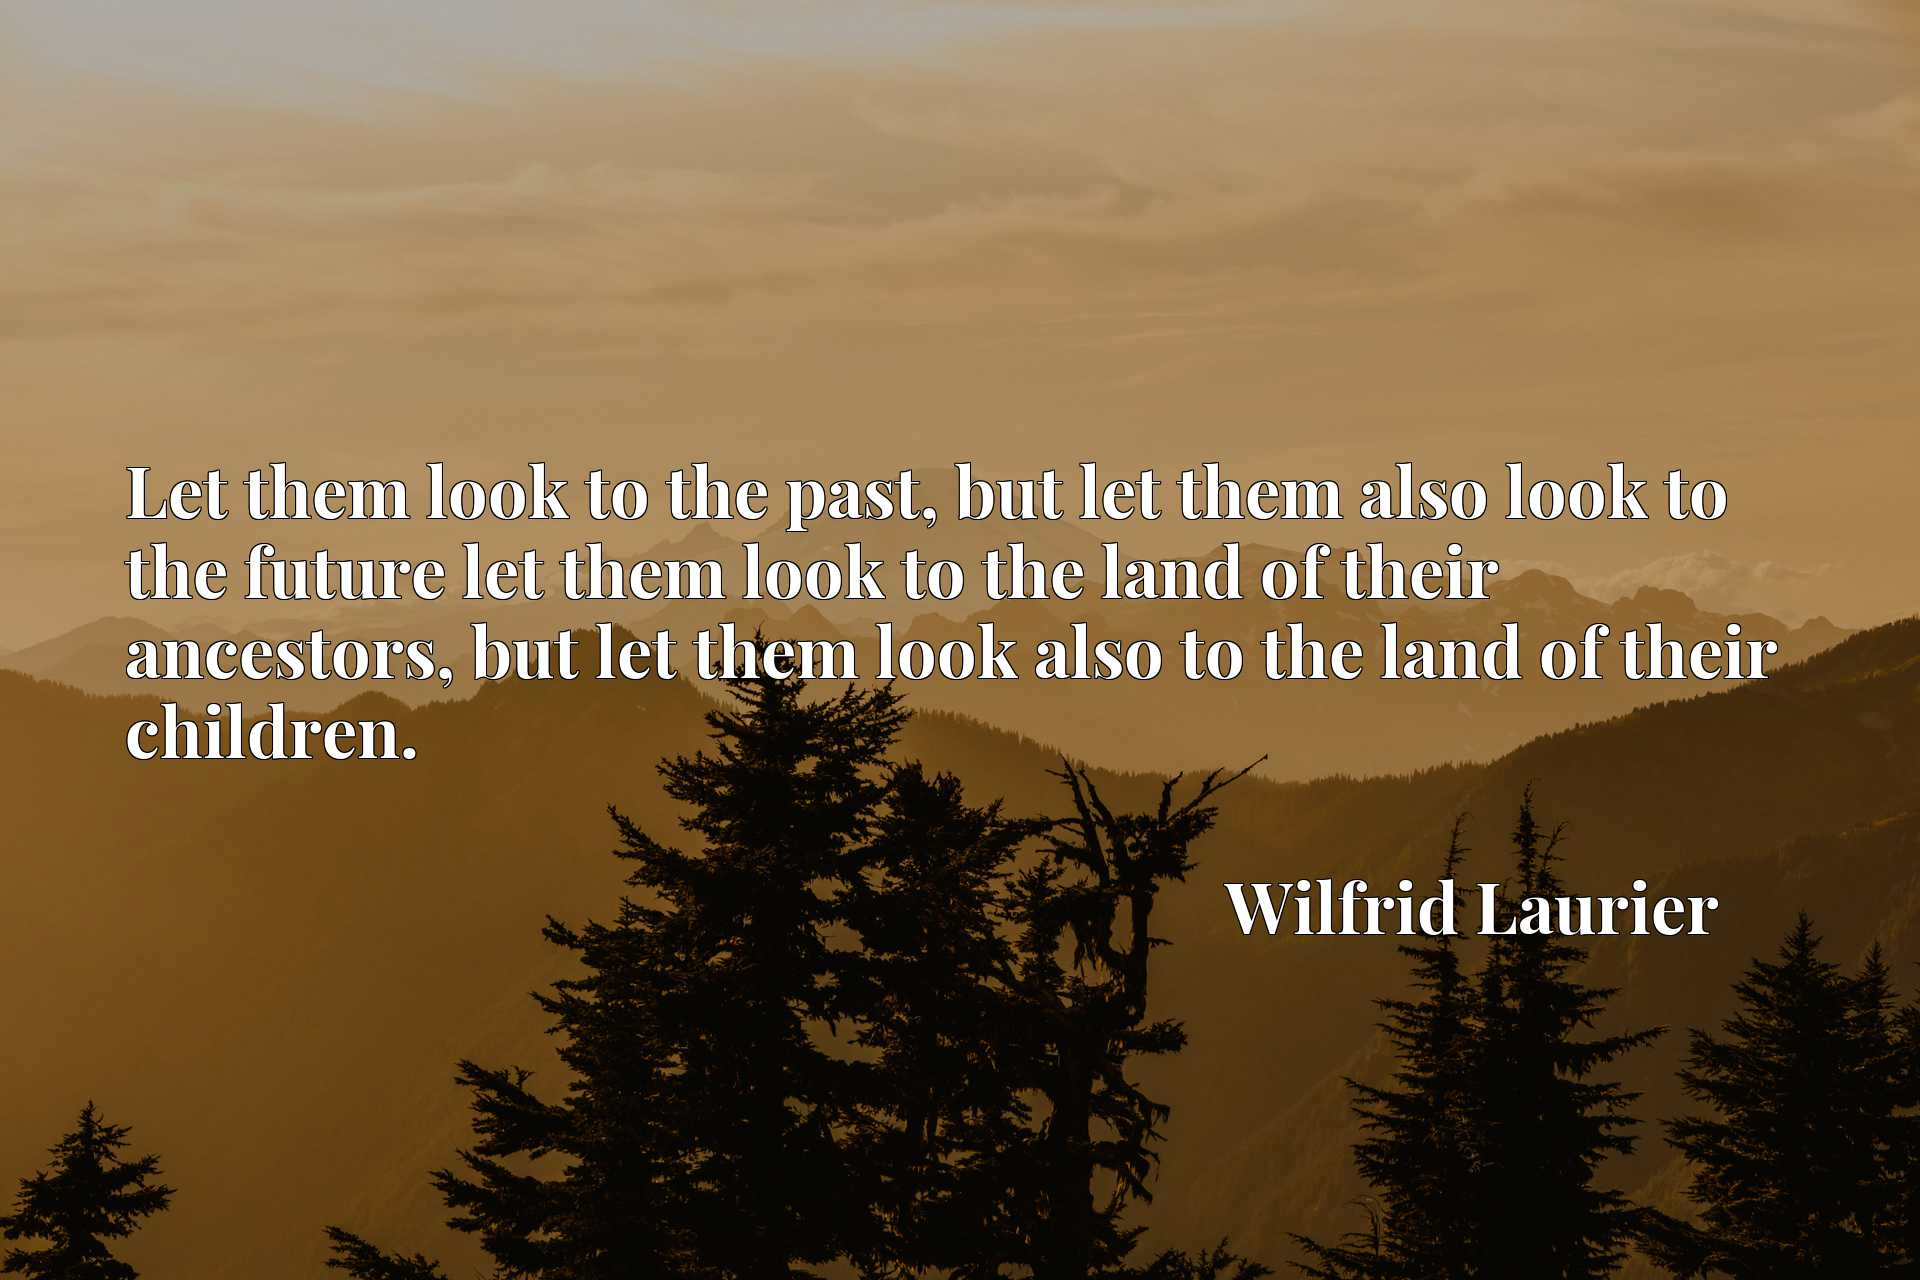 Let them look to the past, but let them also look to the future let them look to the land of their ancestors, but let them look also to the land of their children.